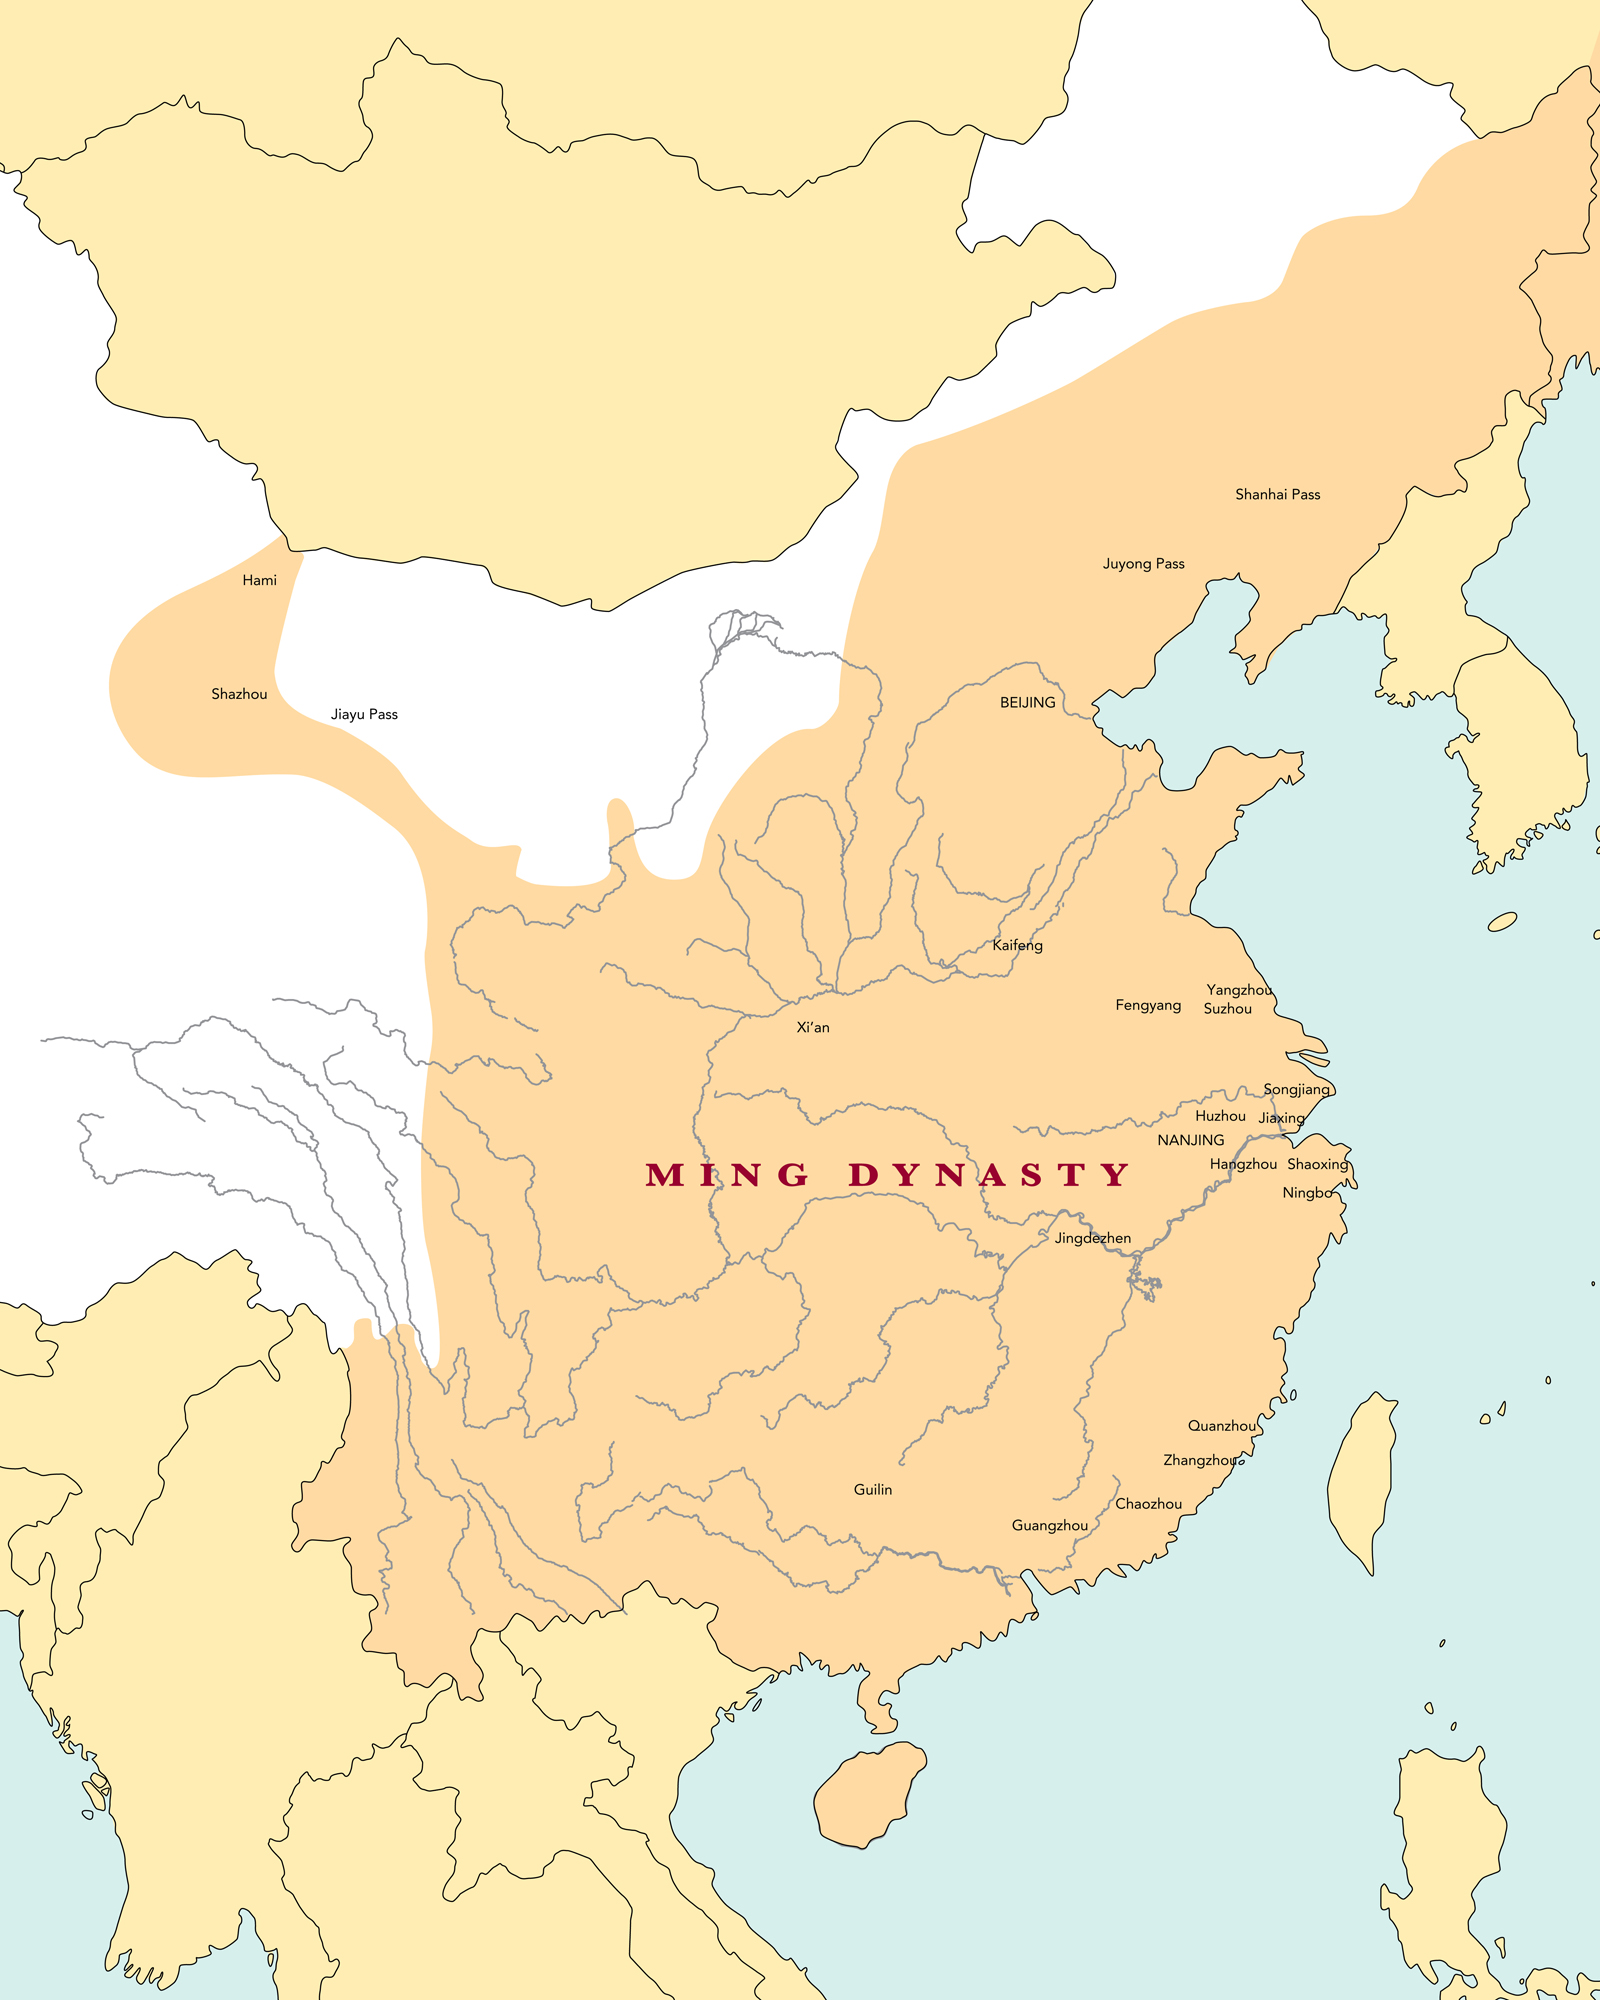 An Introduction To The Ming Dynasty Article Khan - Jingdezhen map